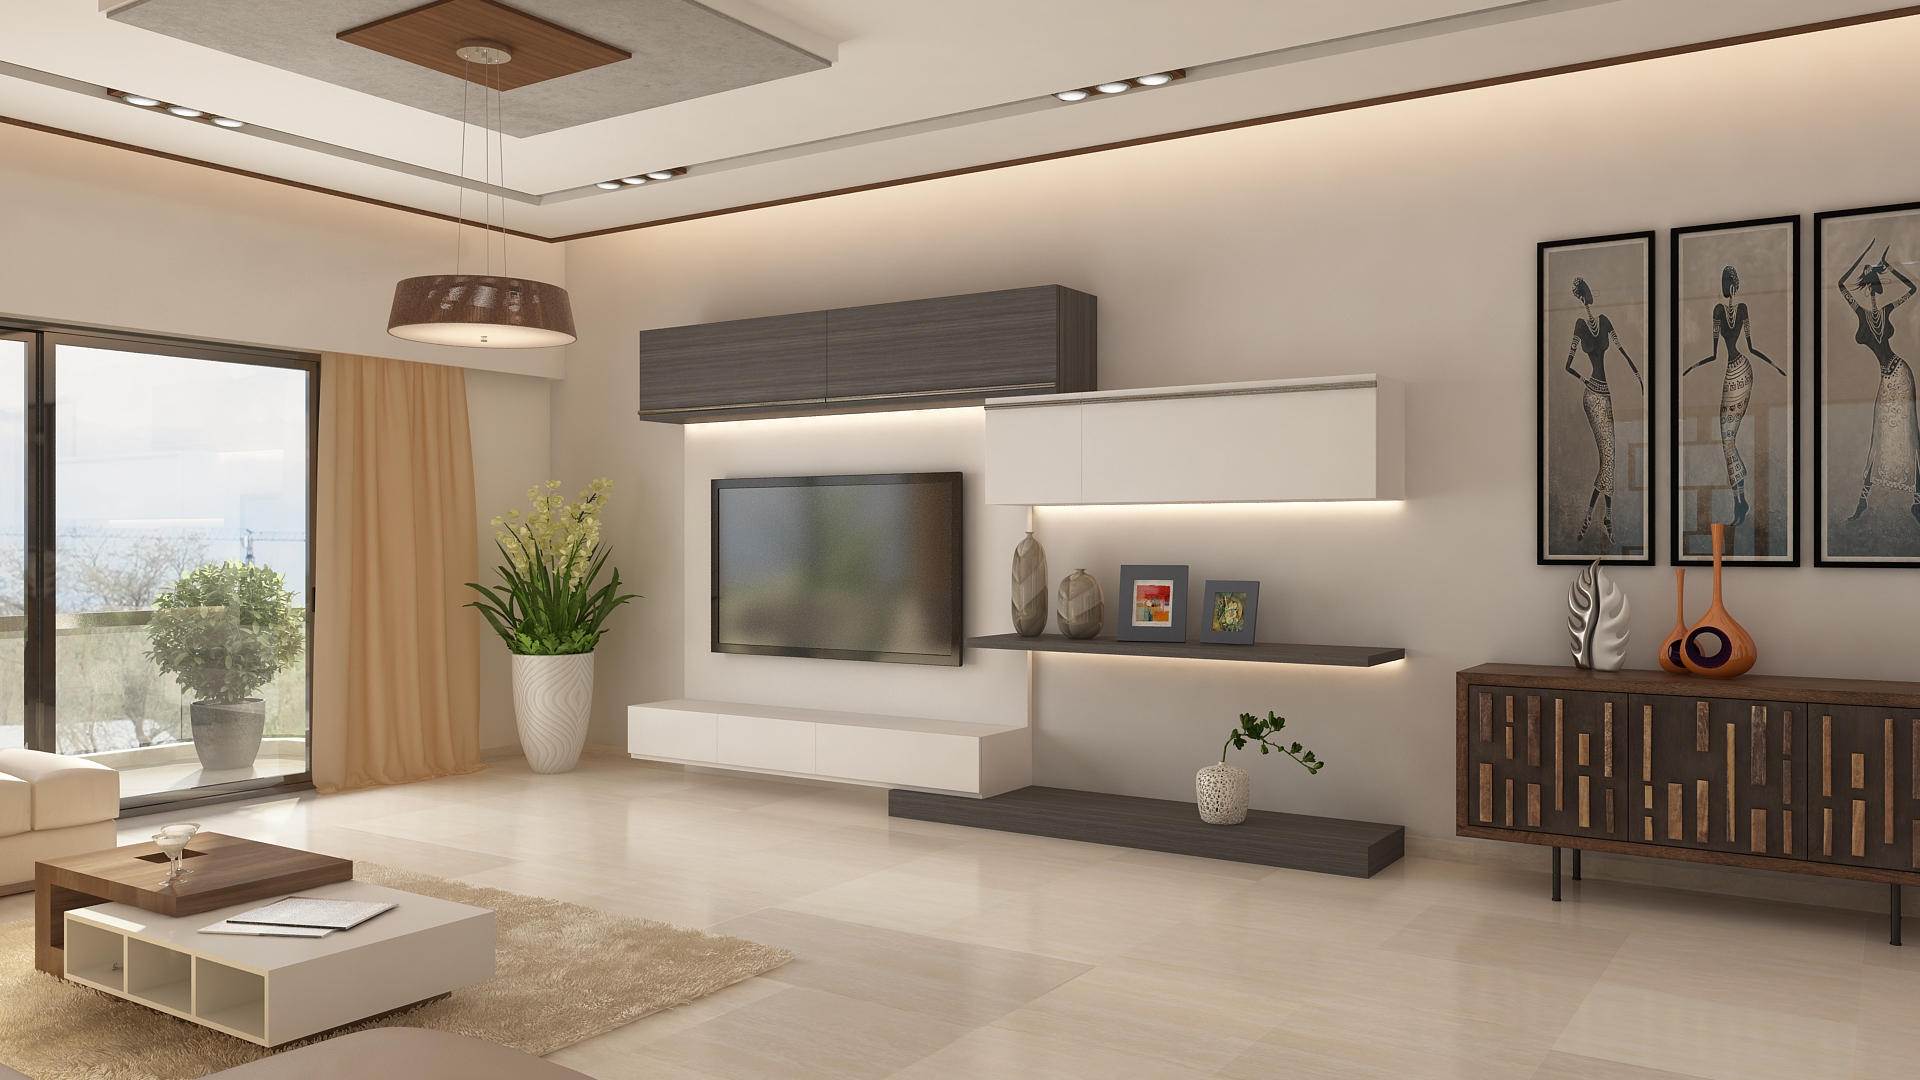 Ghar360 portfolio 2 bhk apartment interior design in jp - Interior design for living room and bedroom ...